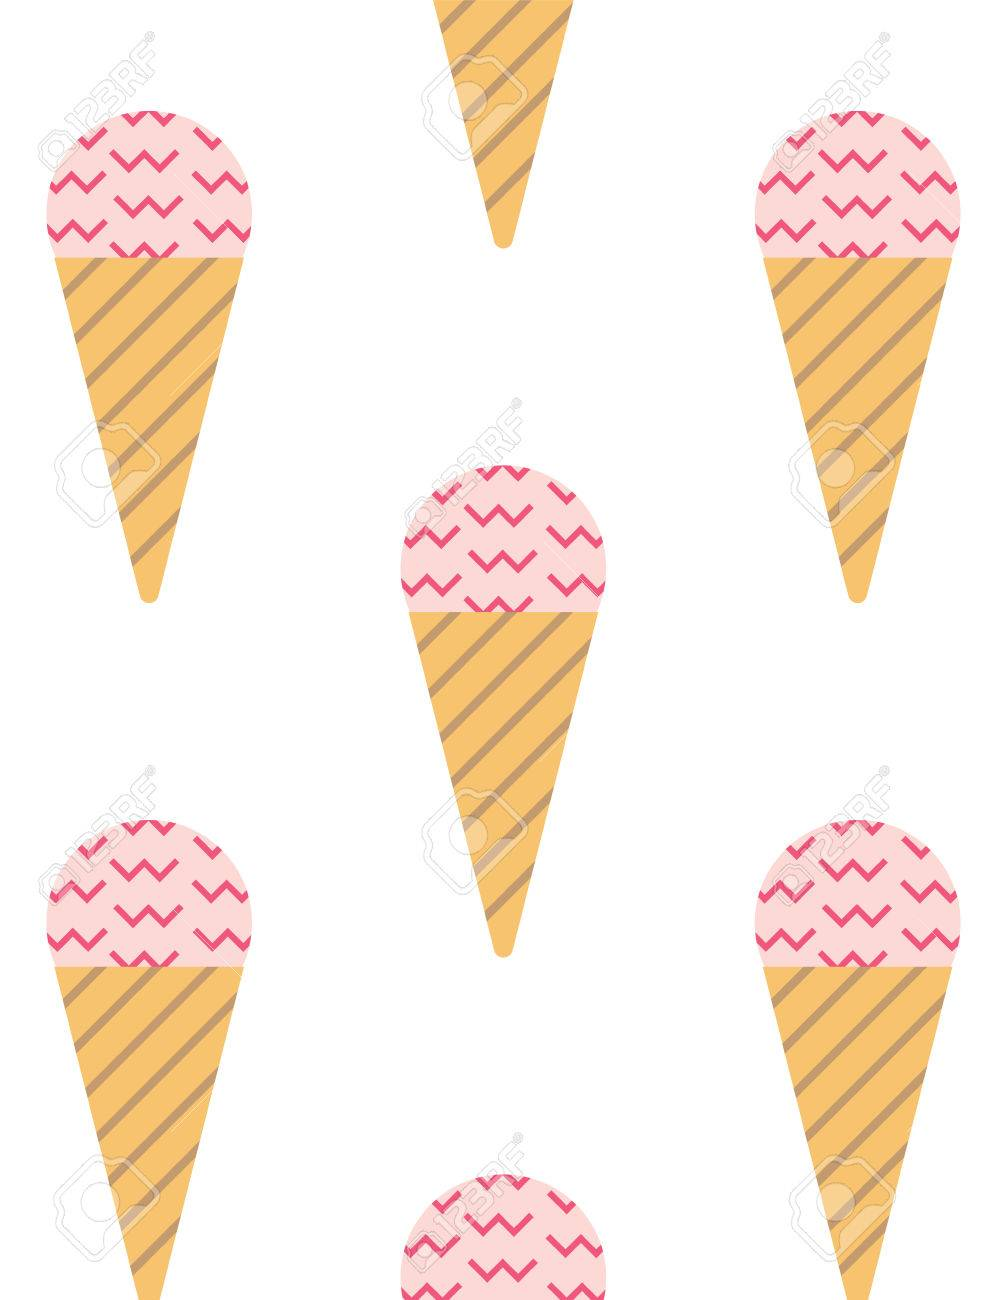 Organizer cover in scandinavian style with ice cream pattern organizer cover in scandinavian style with ice cream pattern perfect for print template maxwellsz